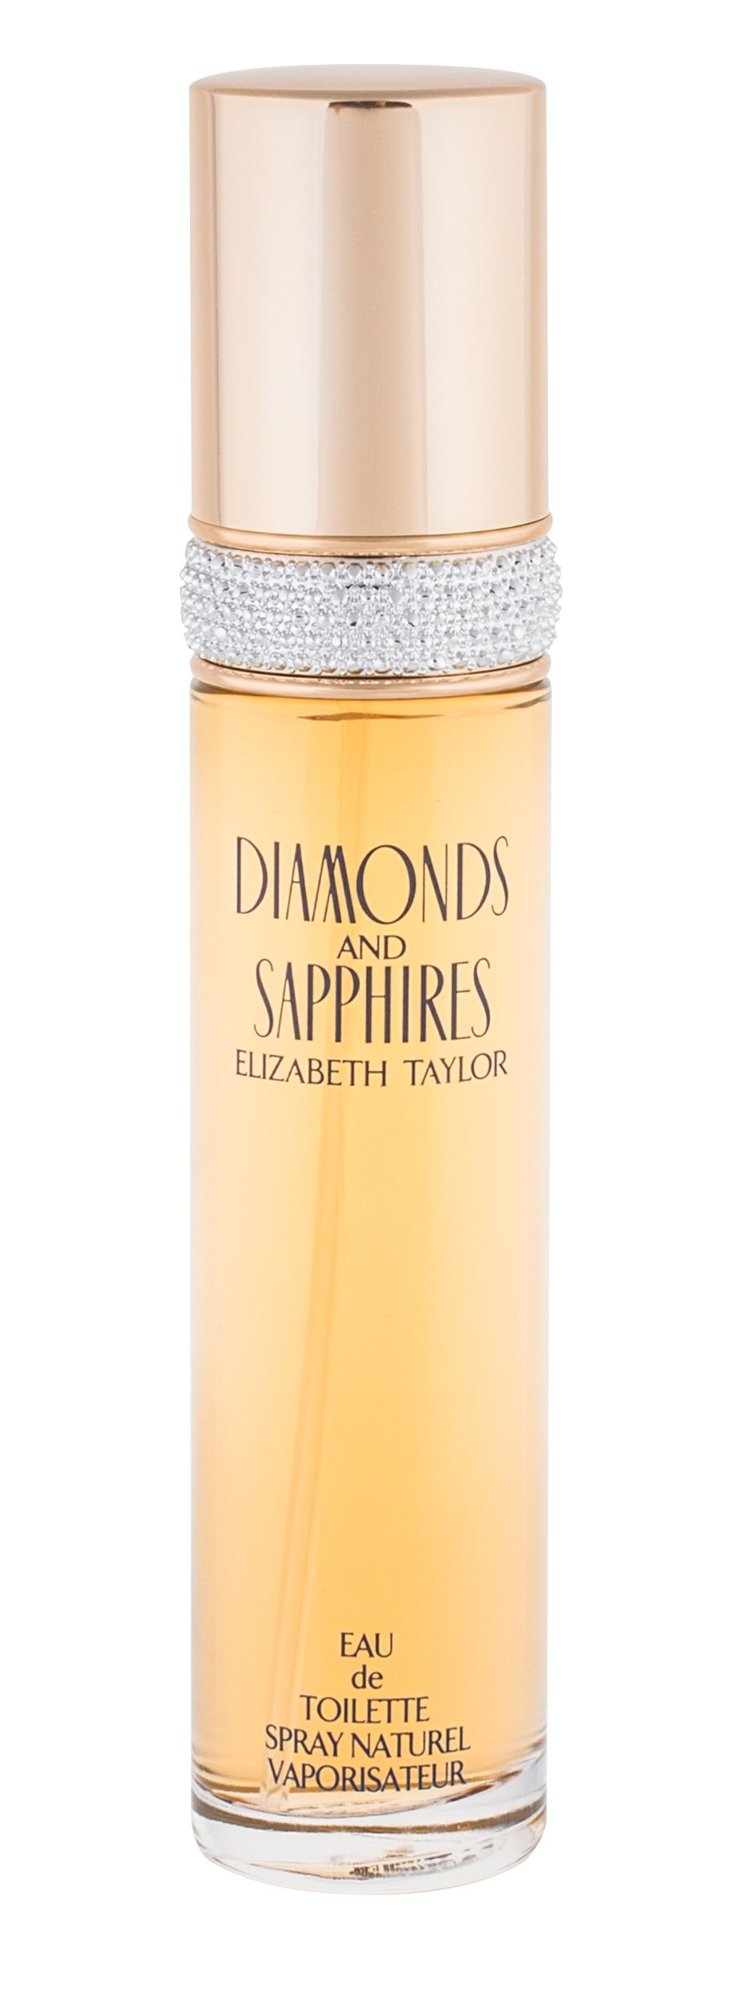 Elizabeth Taylor Diamonds and Saphires EDT 50ml